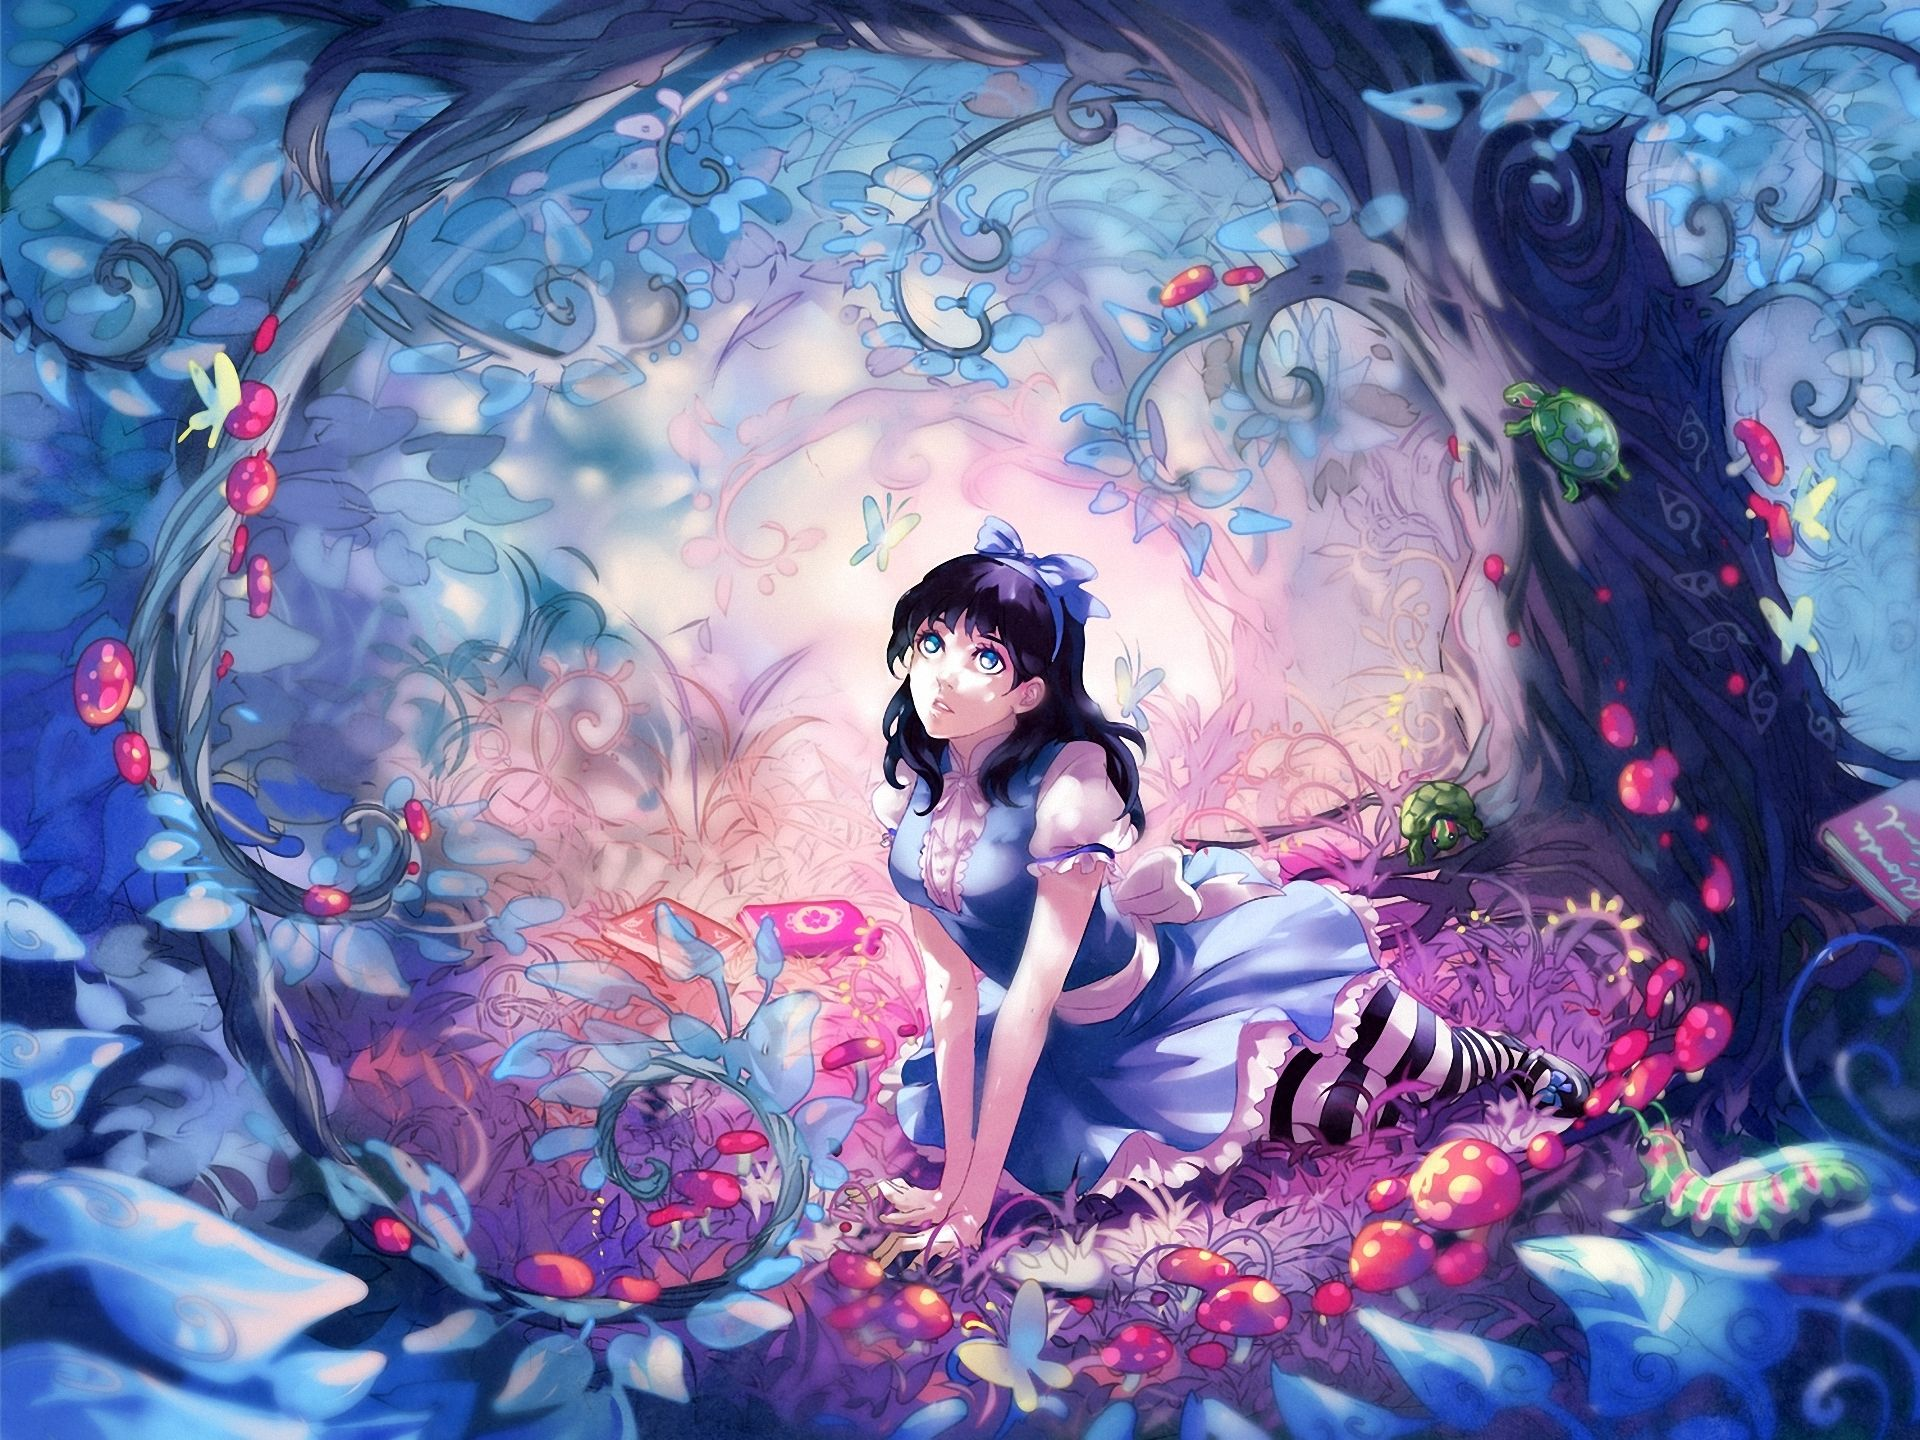 Anime Alice In Wonderland Wallpaper Alice in